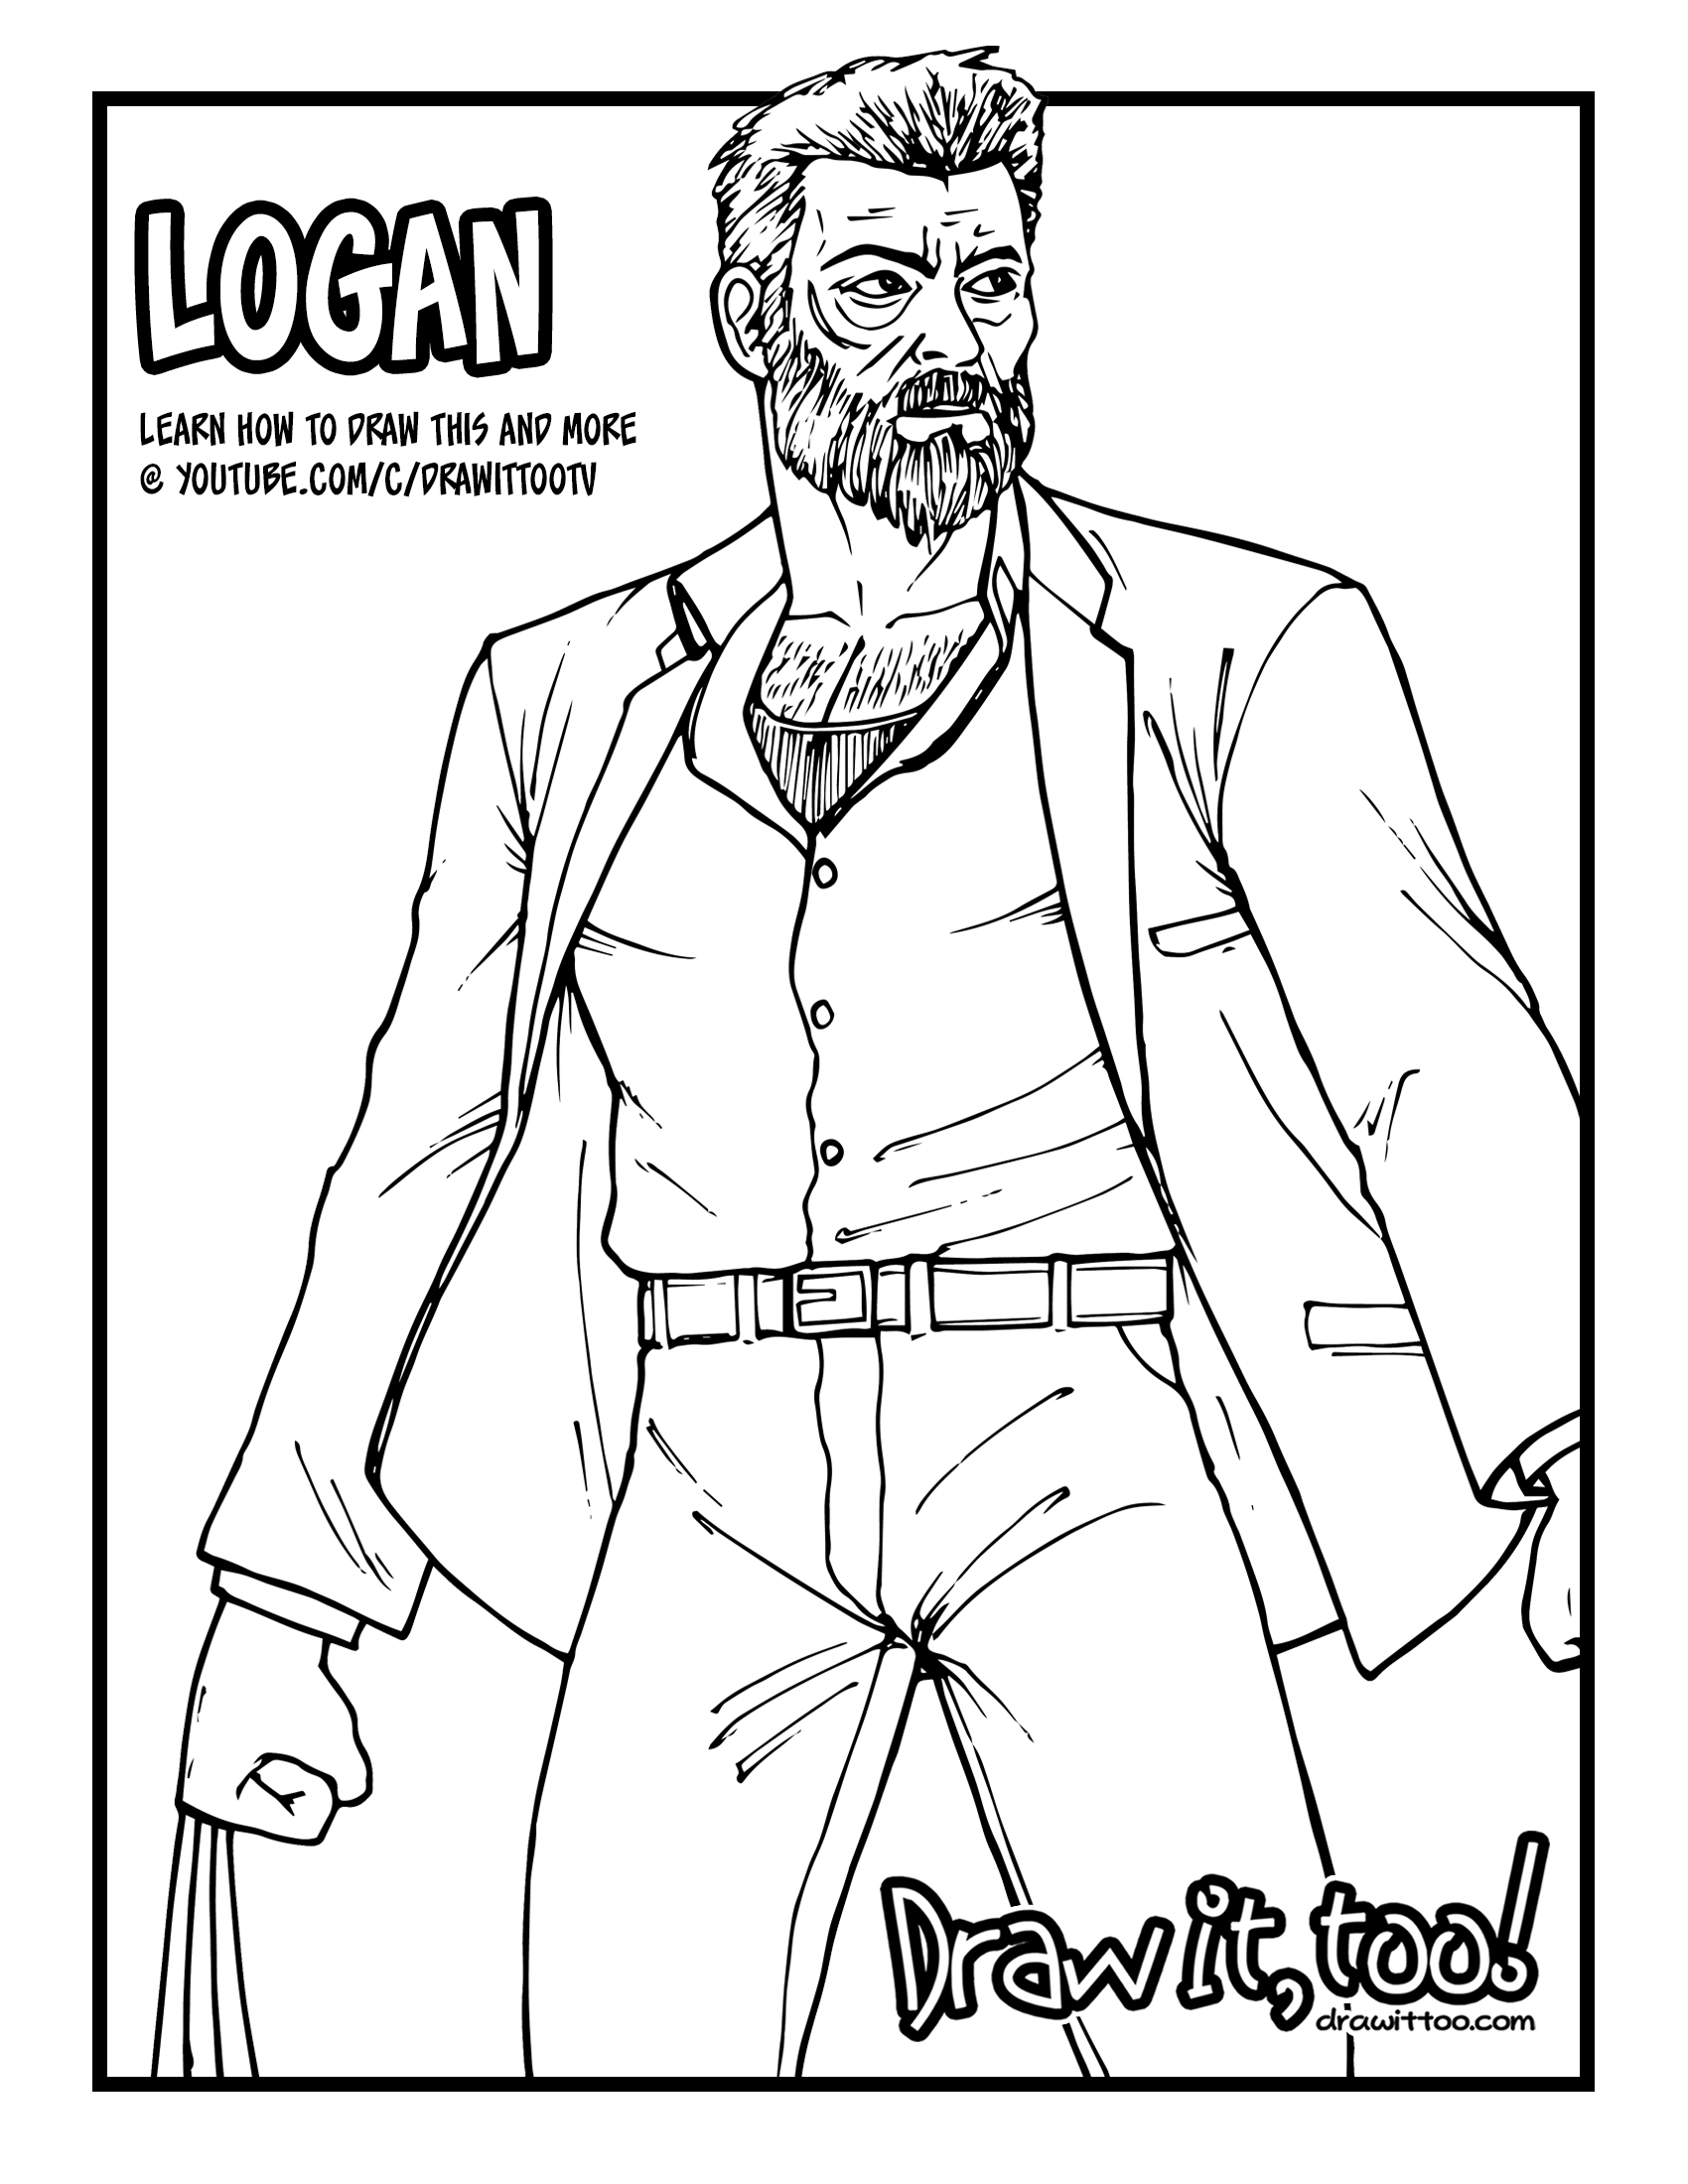 How to Draw LOGAN (Logan [2017] Movie) Narrated Easy Step